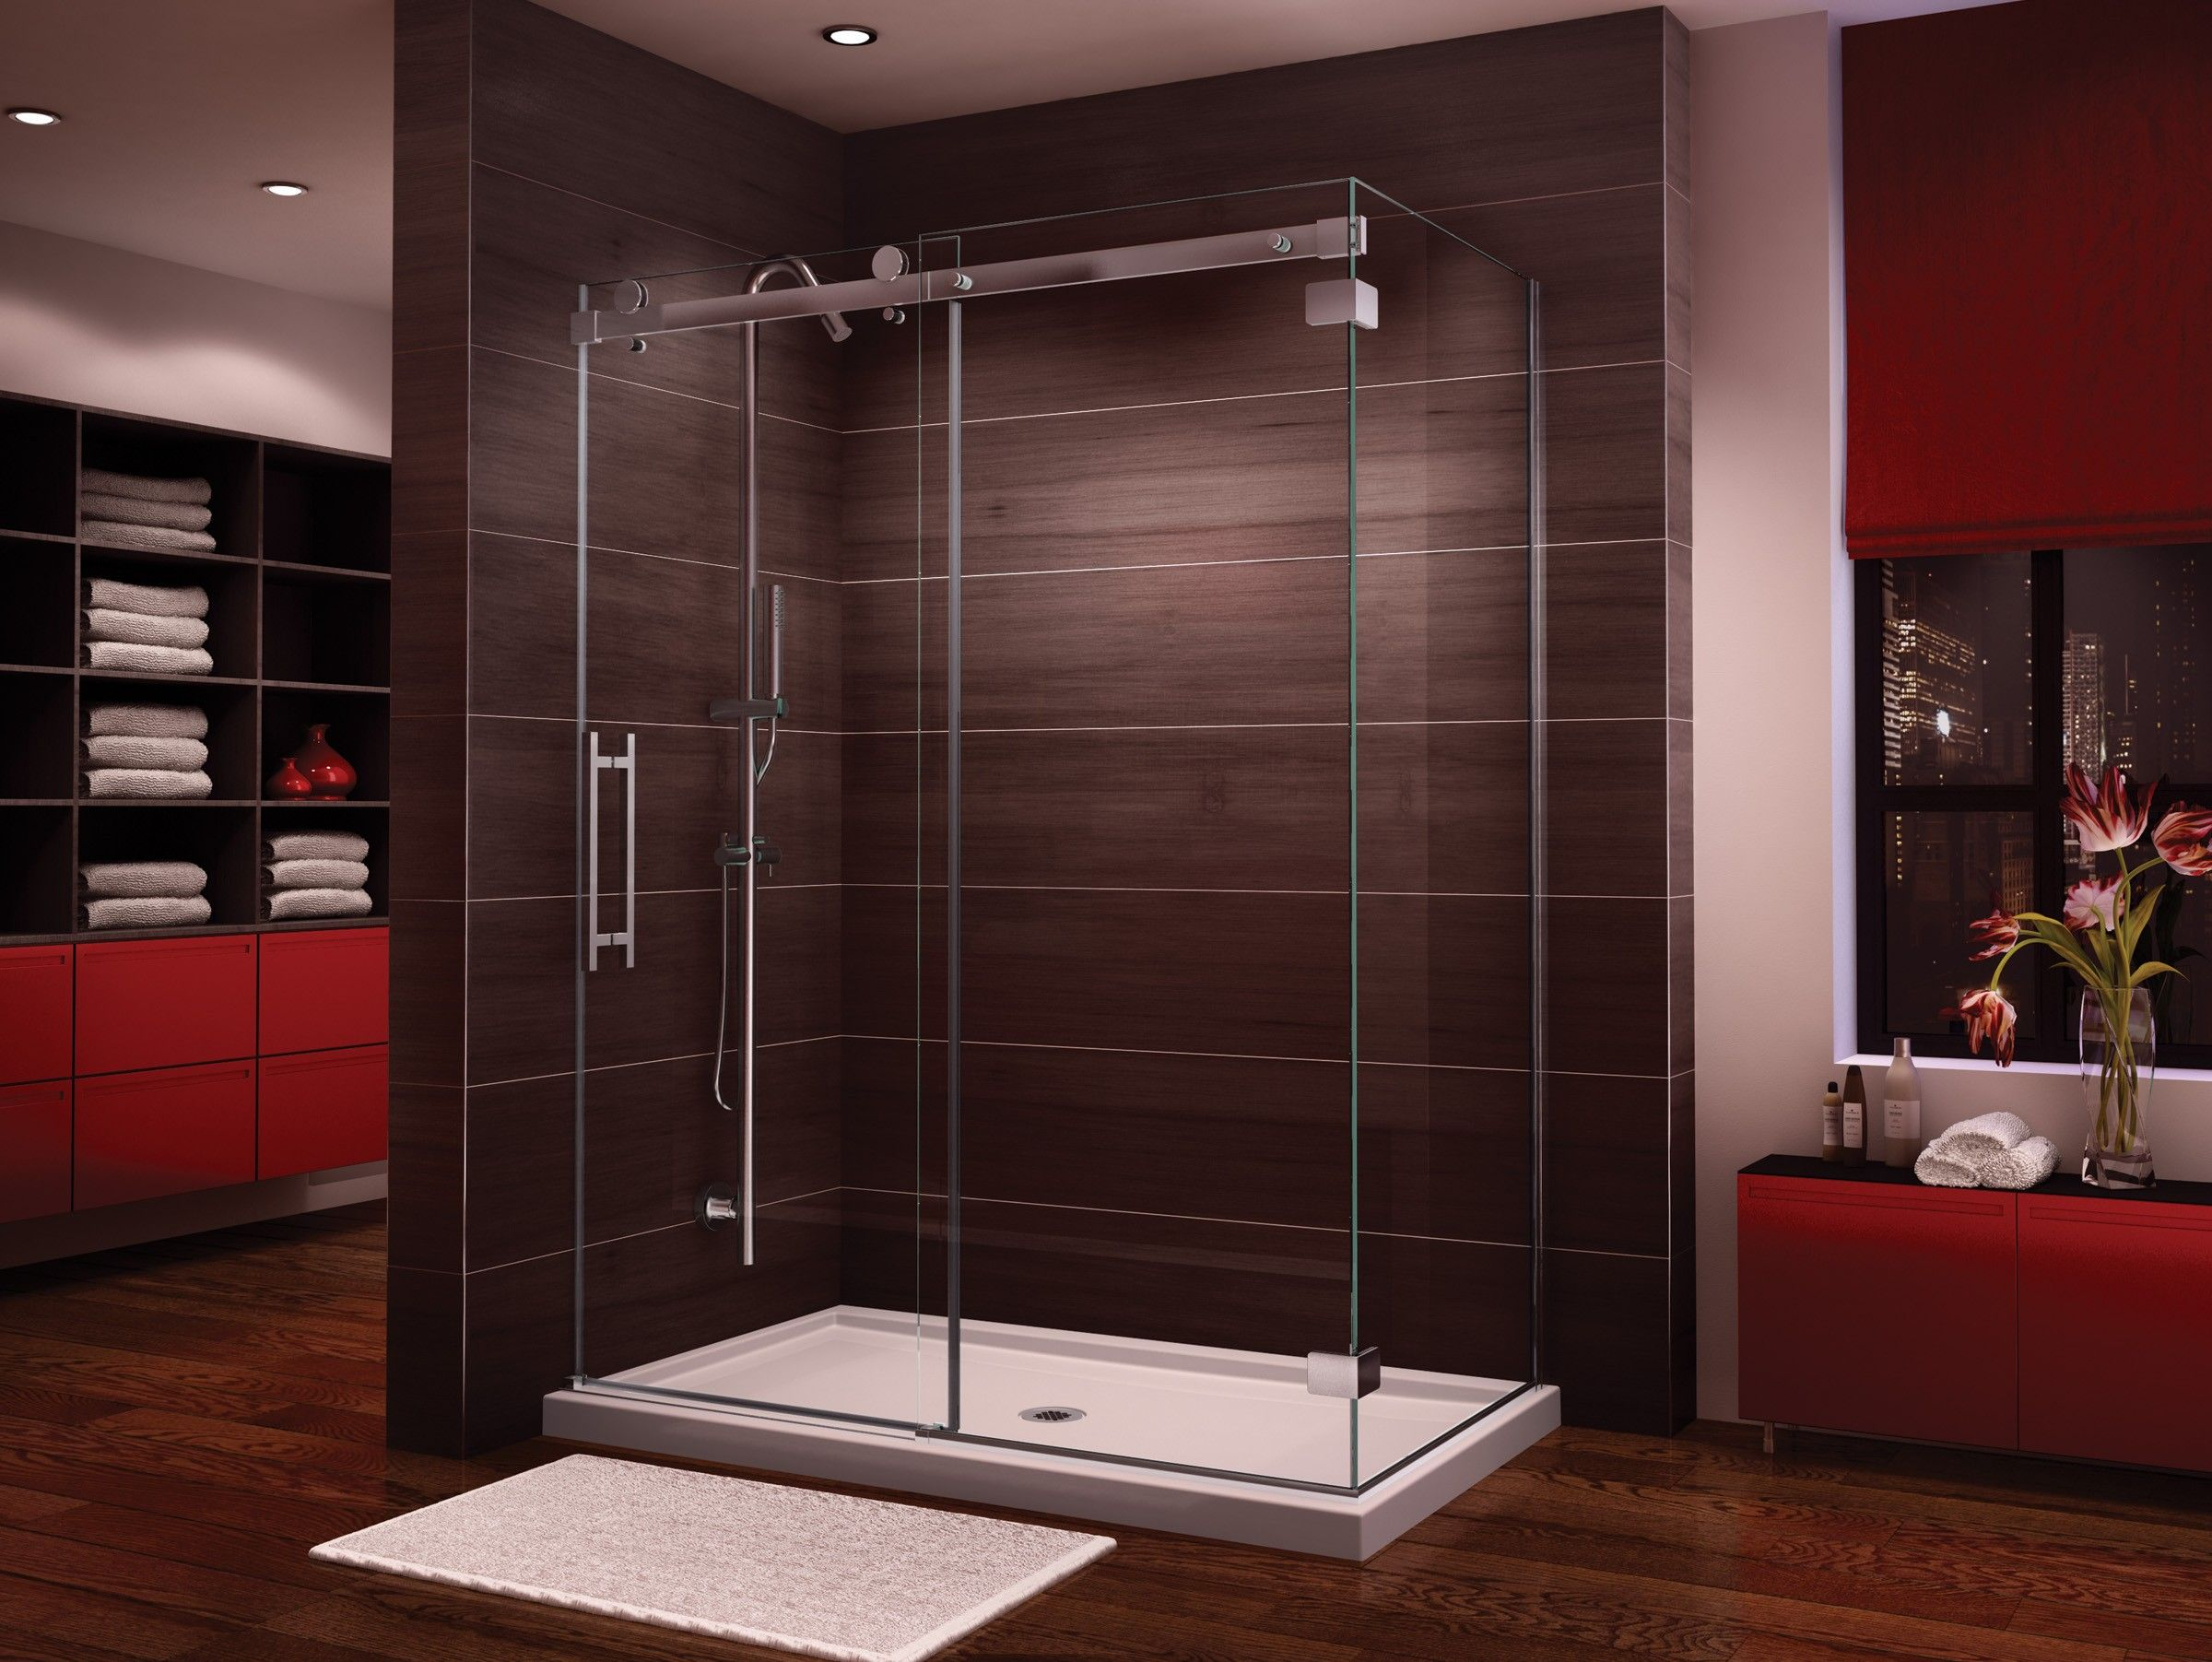 Fleurco Novara In Line 57 58 Door And Panel With Return Panel Closes Against Wall H0v26036 Cw 1 208 00 Shower Doors Neo Angle Shower Doors Glass Shower Enclosures